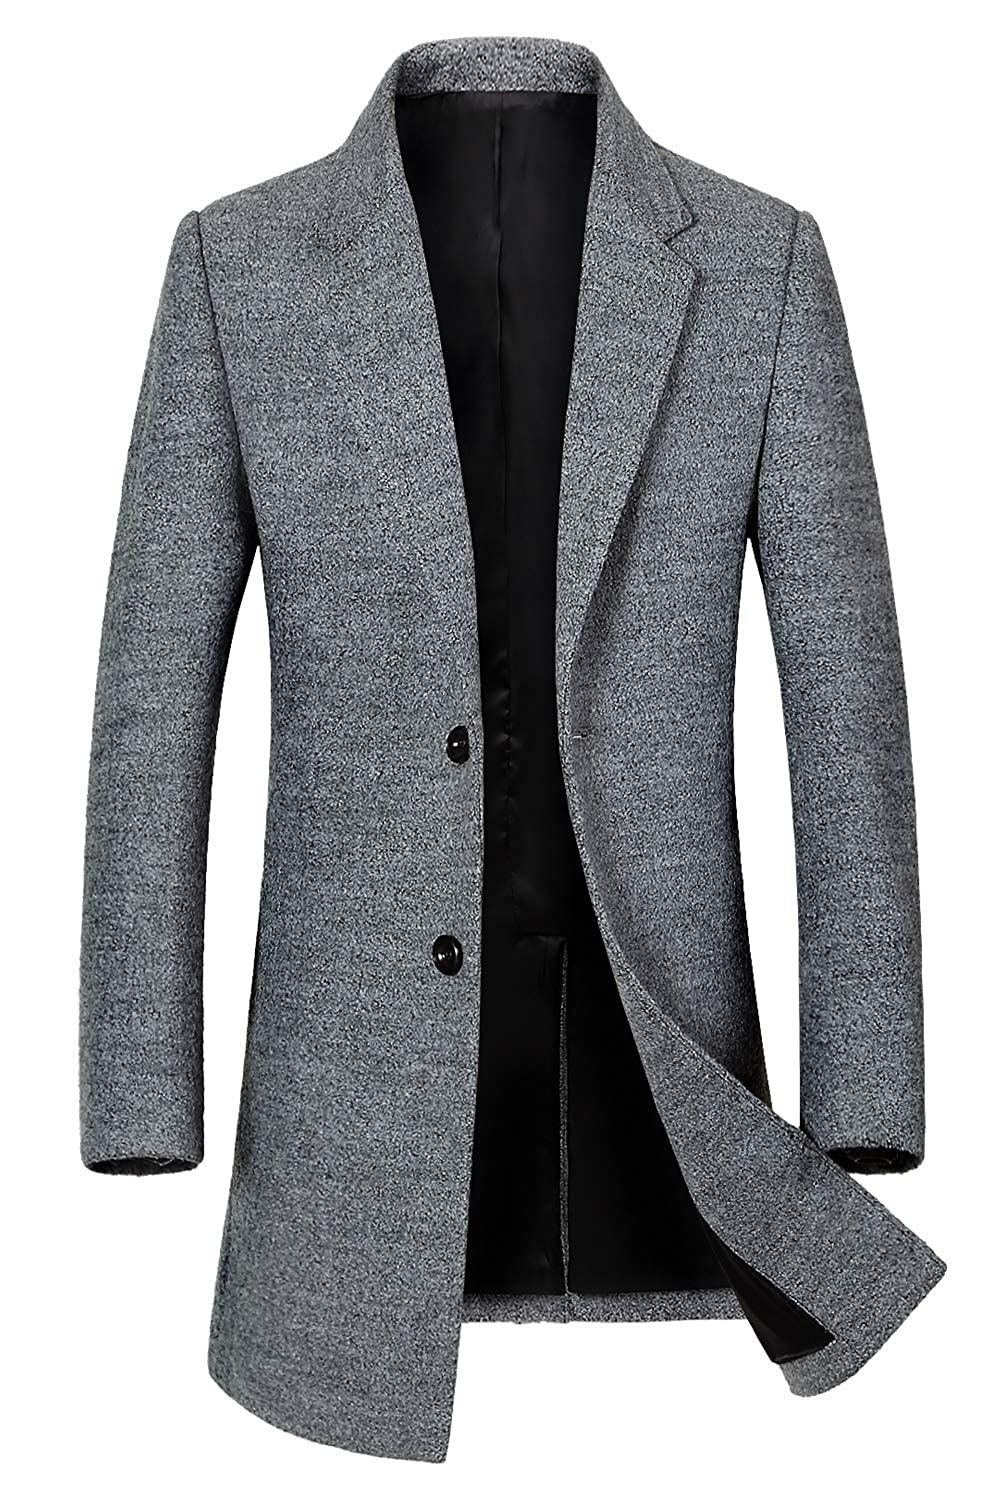 Men's Classic Single Breasted Wool Walker Coat Stylish Jacket 101219 EFC000101-PA